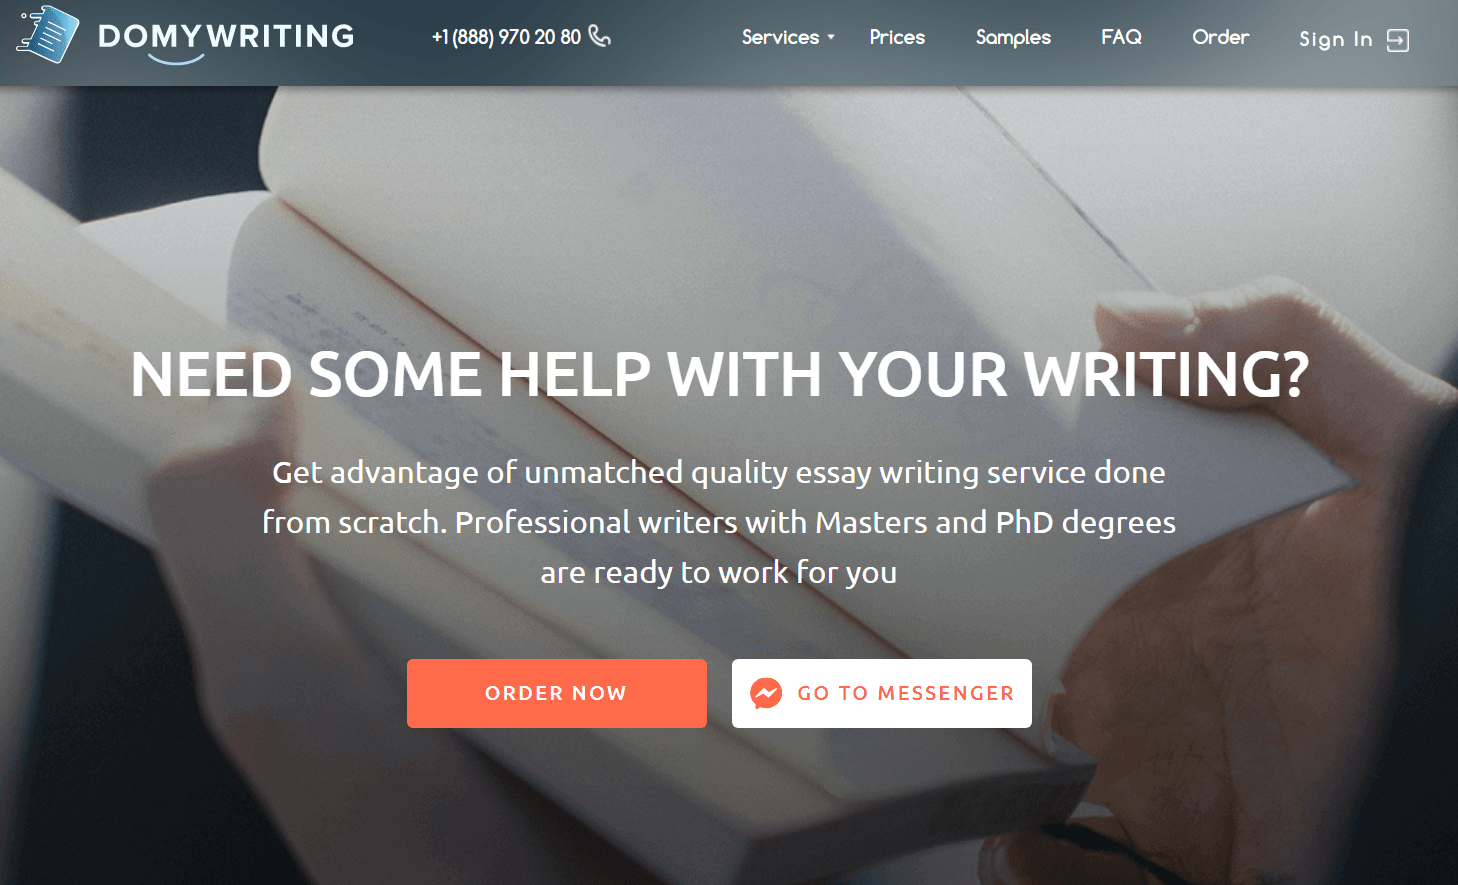 domywriting.com website